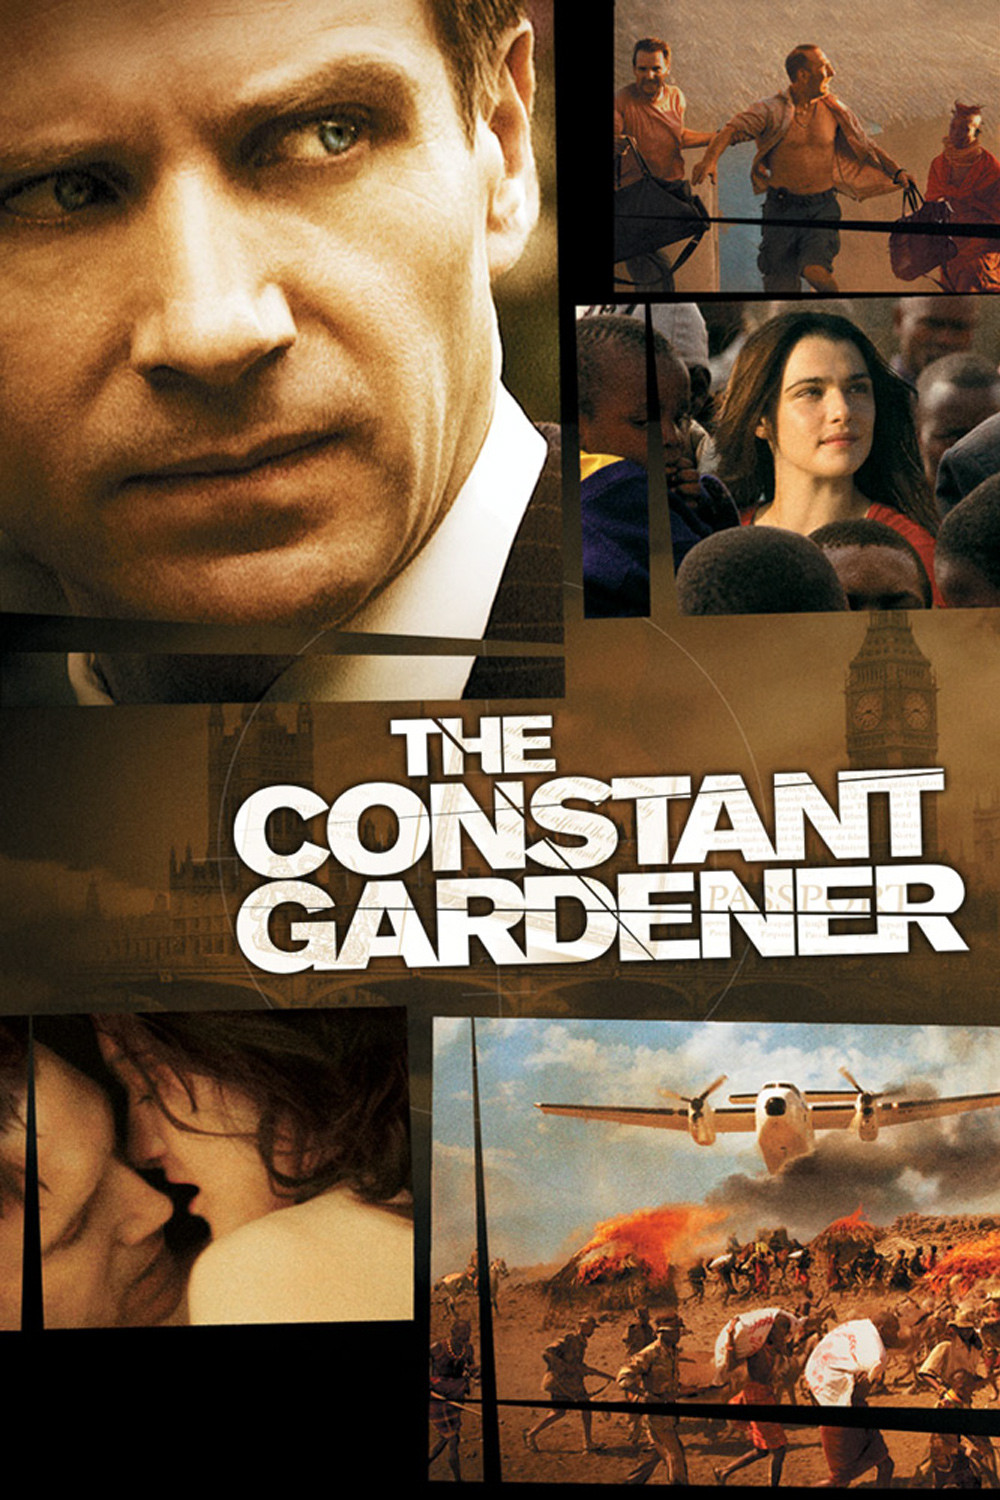 the constant gardener 2005the lighted